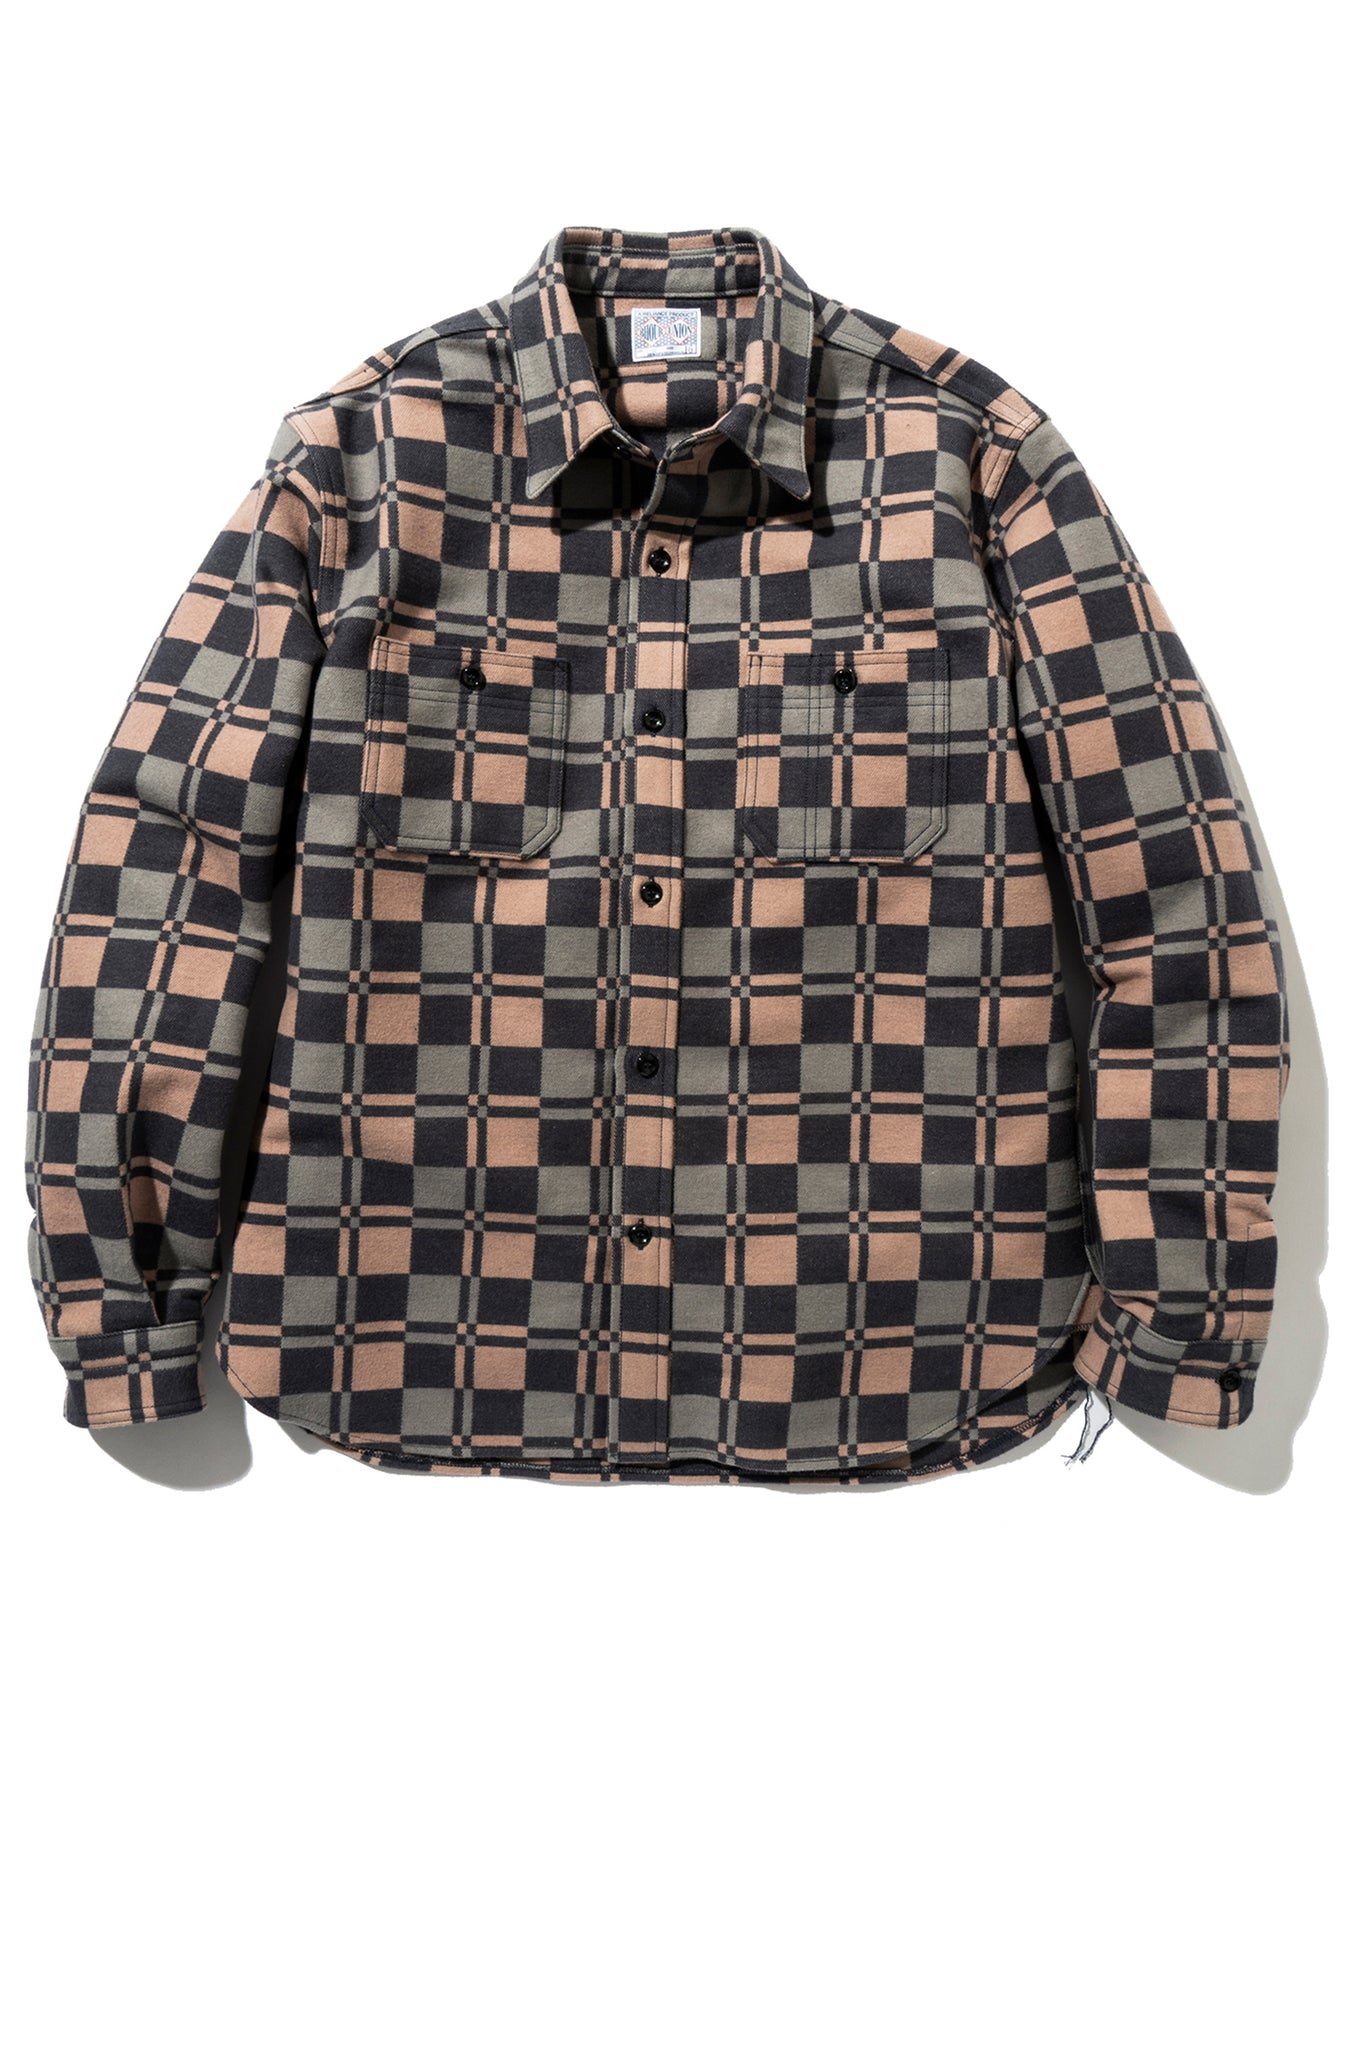 8HU HORSE BLANKET FLANNEL SHIRT